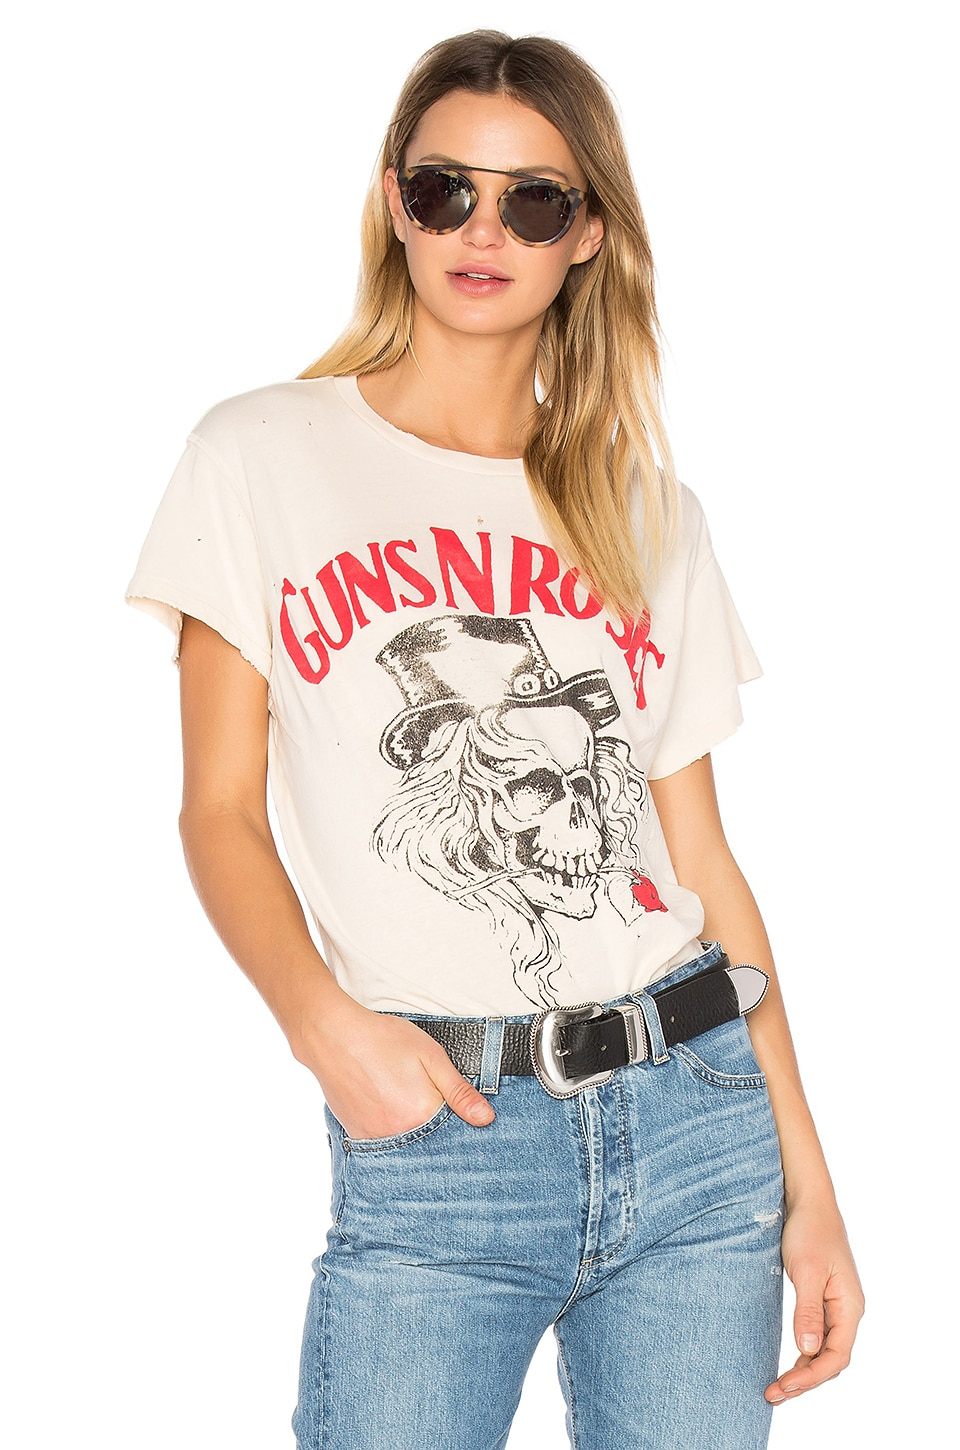 Madeworn Guns N Roses Tee in Dirty White